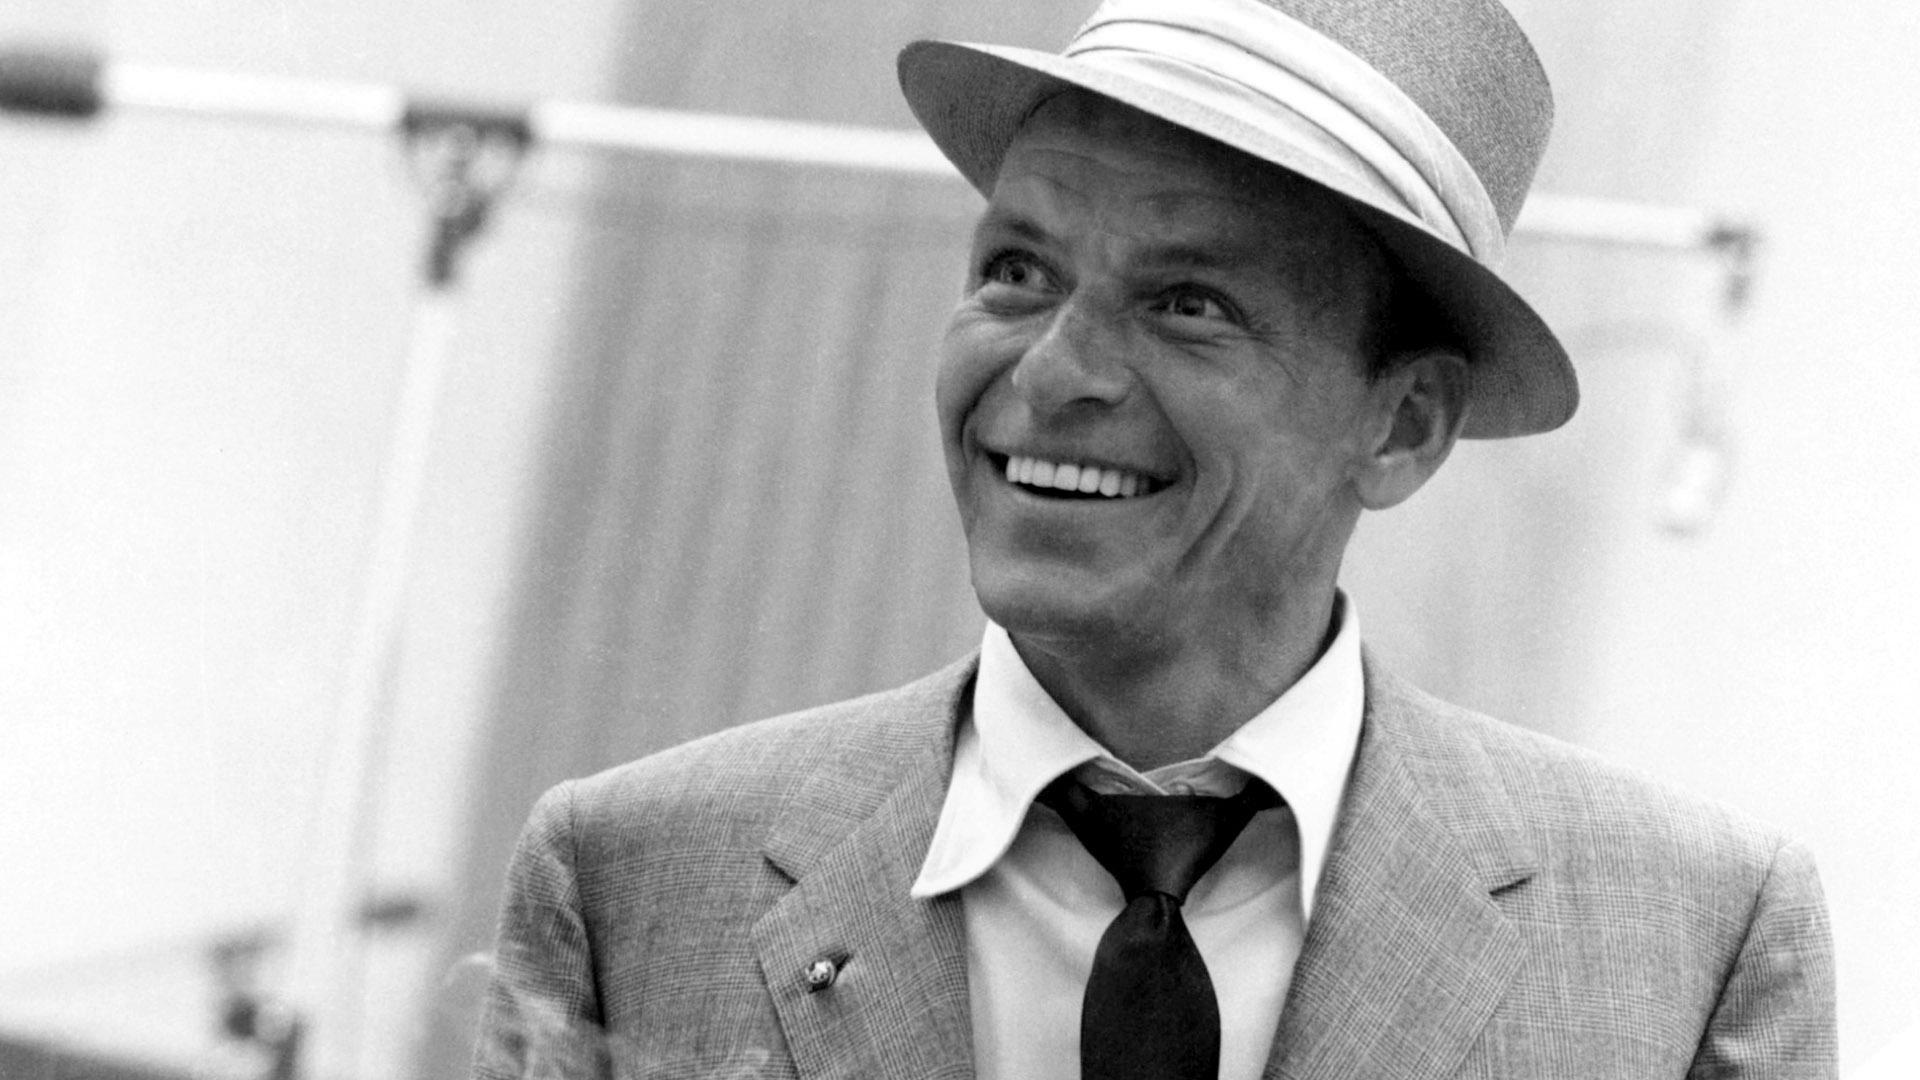 a biography of francis albert frank sinatra an american singer actor director and producer